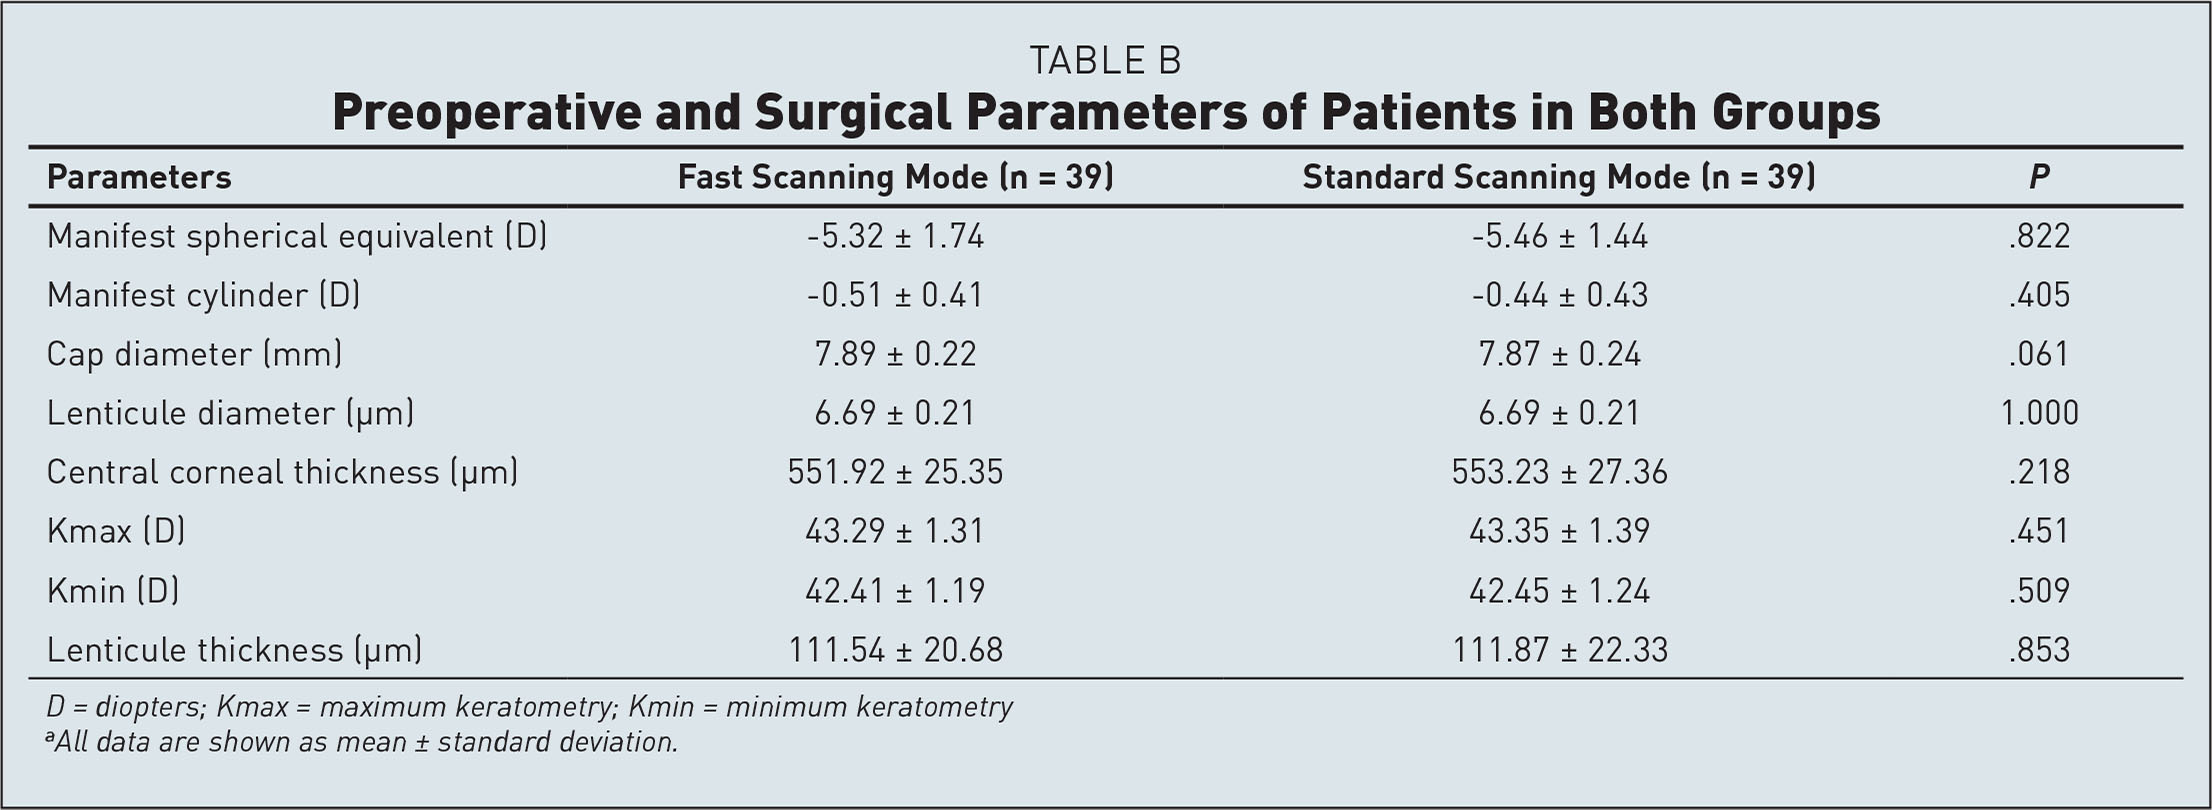 Preoperative and Surgical Parameters of Patients in Both Groups